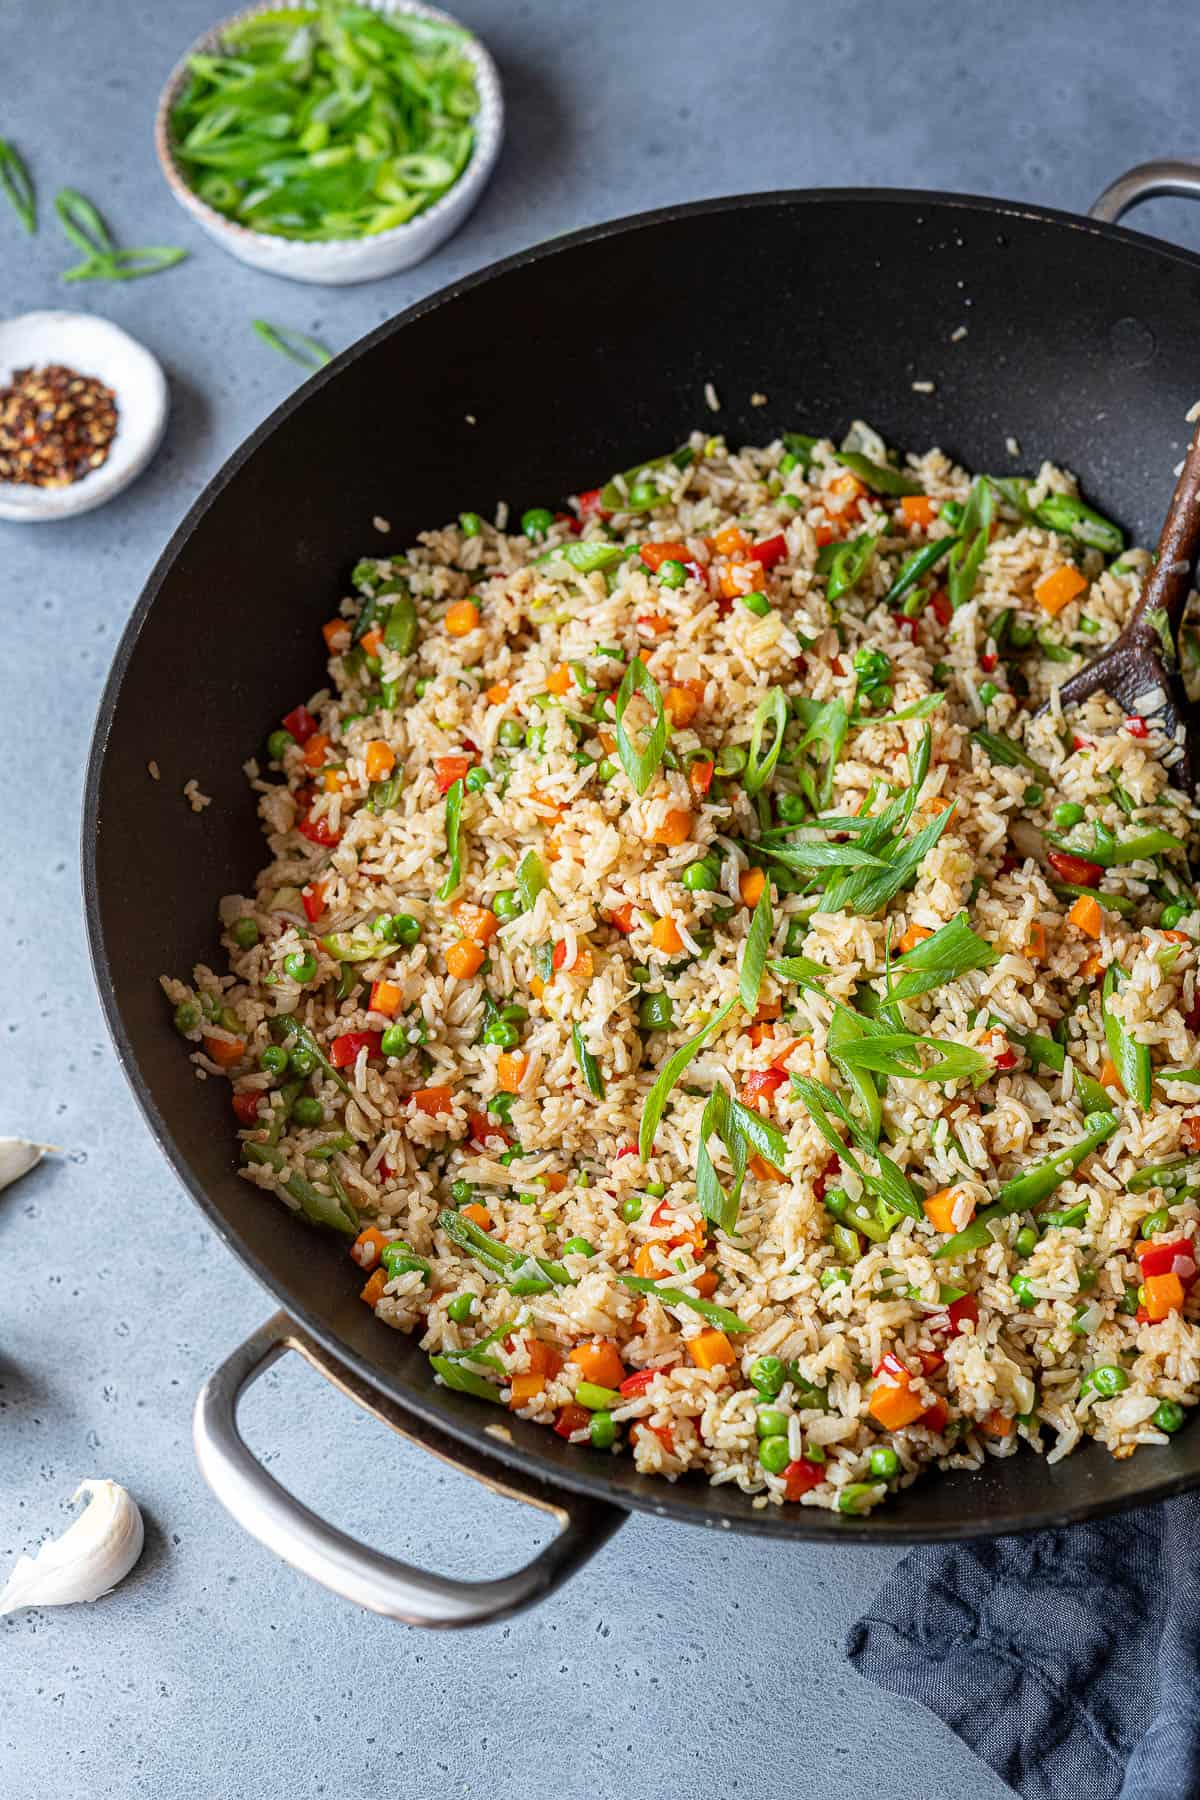 Vegetable fried rice in a wok with a bowl of spring onions and a bowl of chilli flakes.